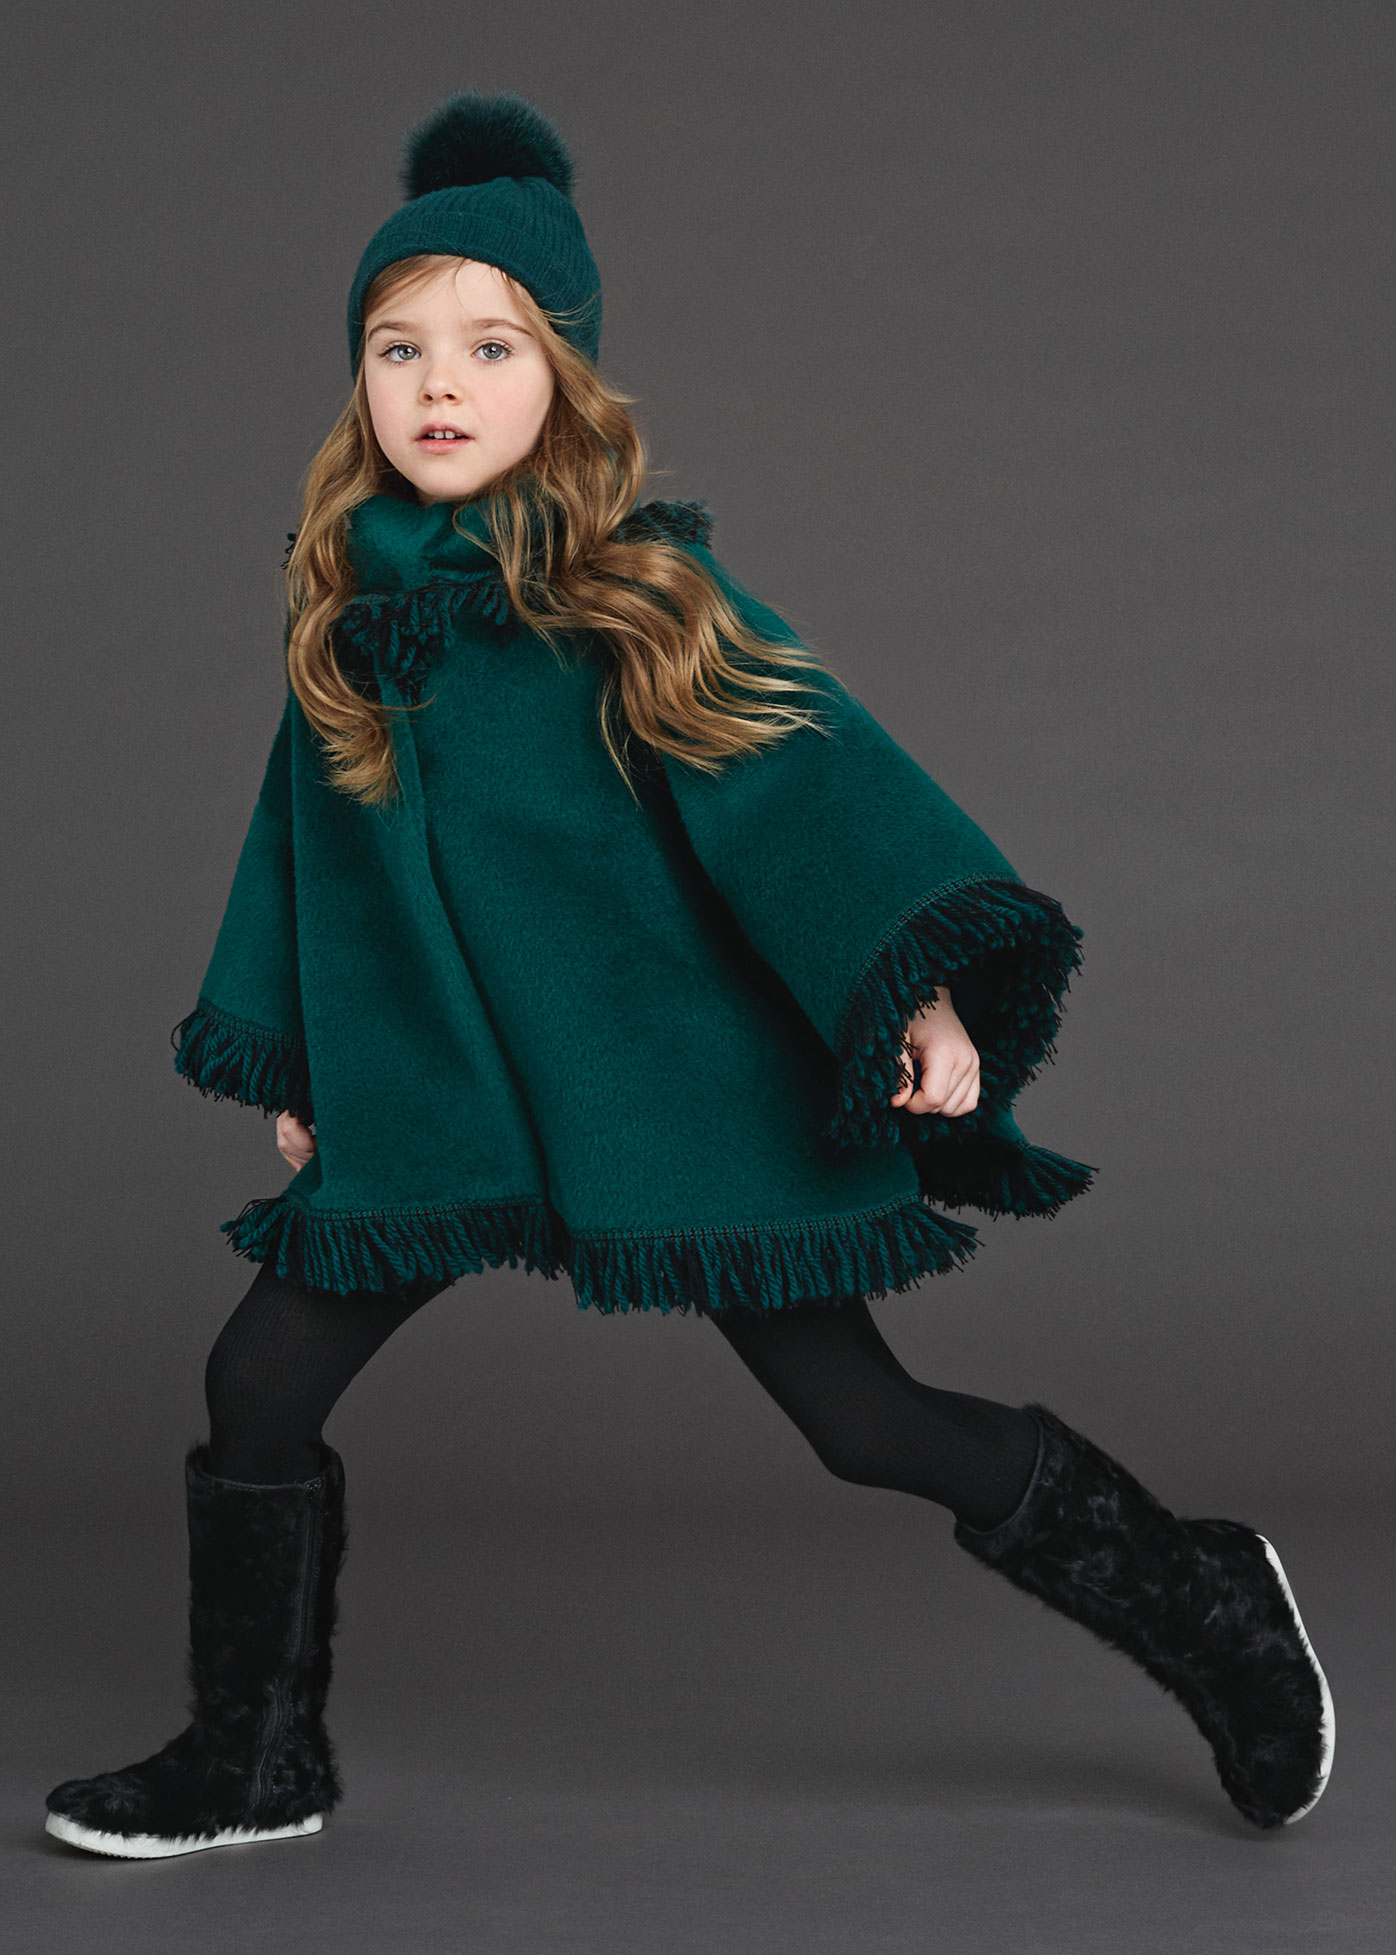 Kids Outfits Clothes Fashion: Girls Dolce & Gabbana Winter 2016 Collection